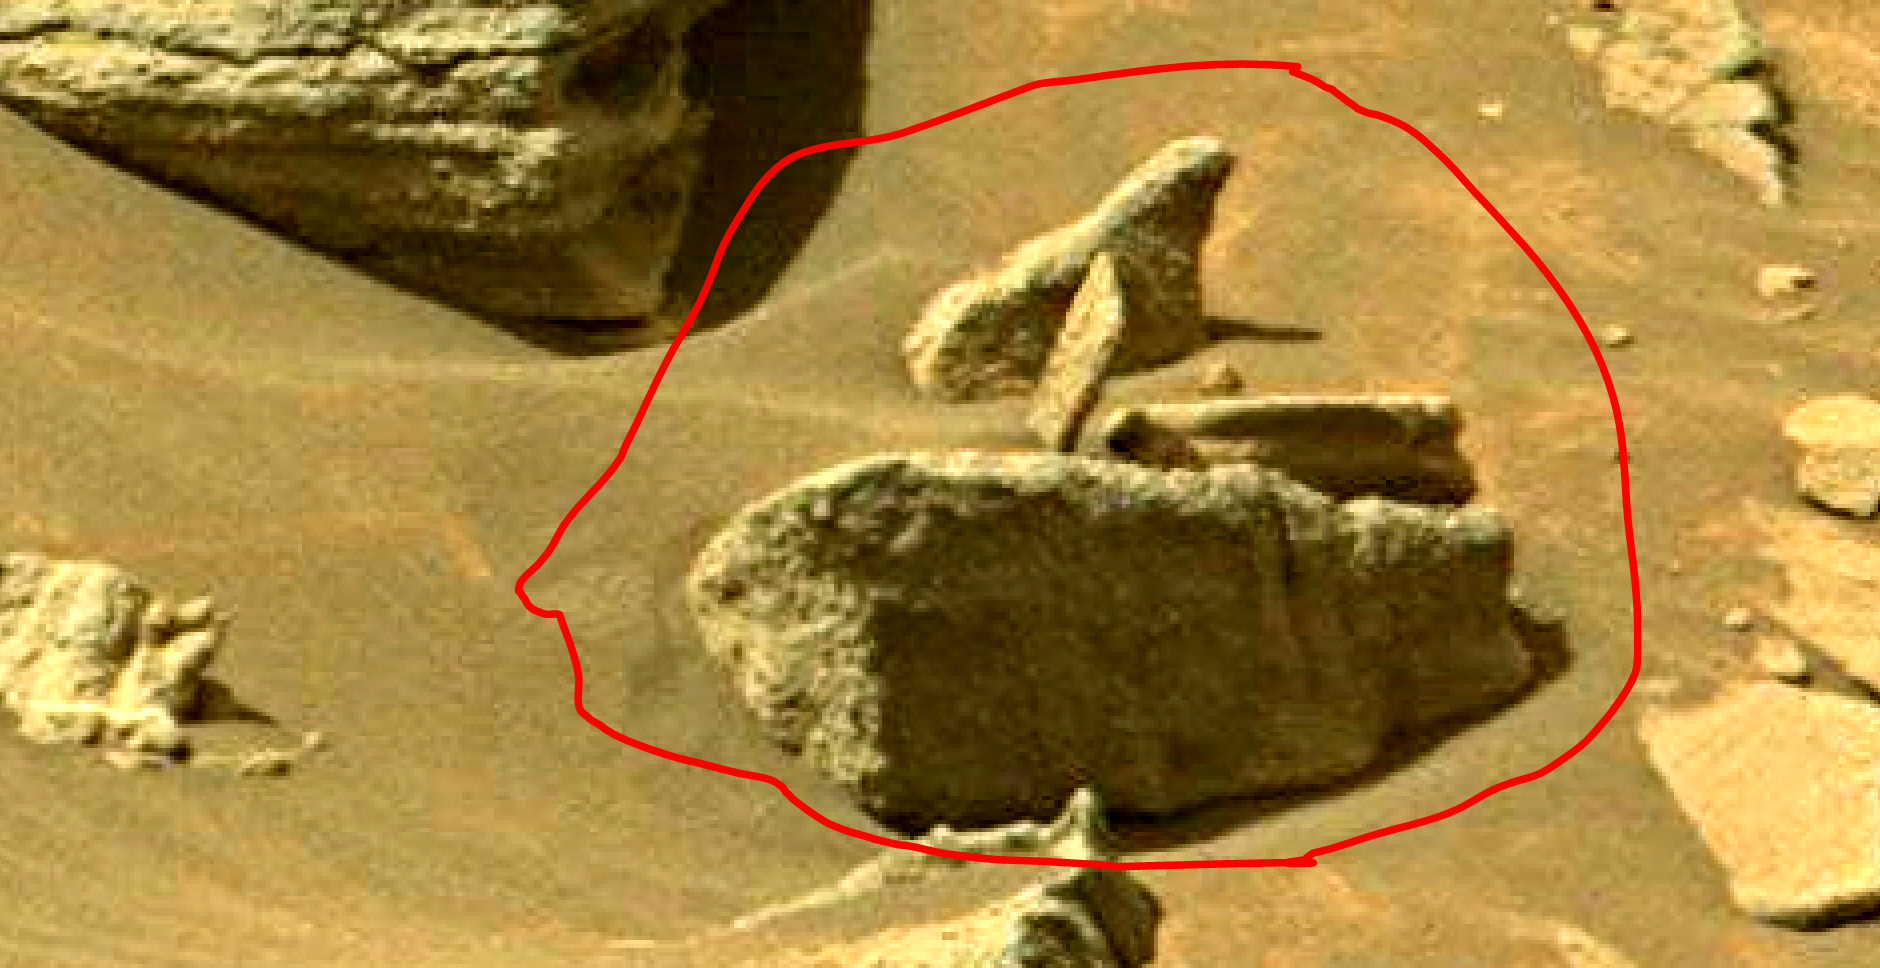 mars-sol-1467-anomaly-artifacts-3-was-life-on-mars